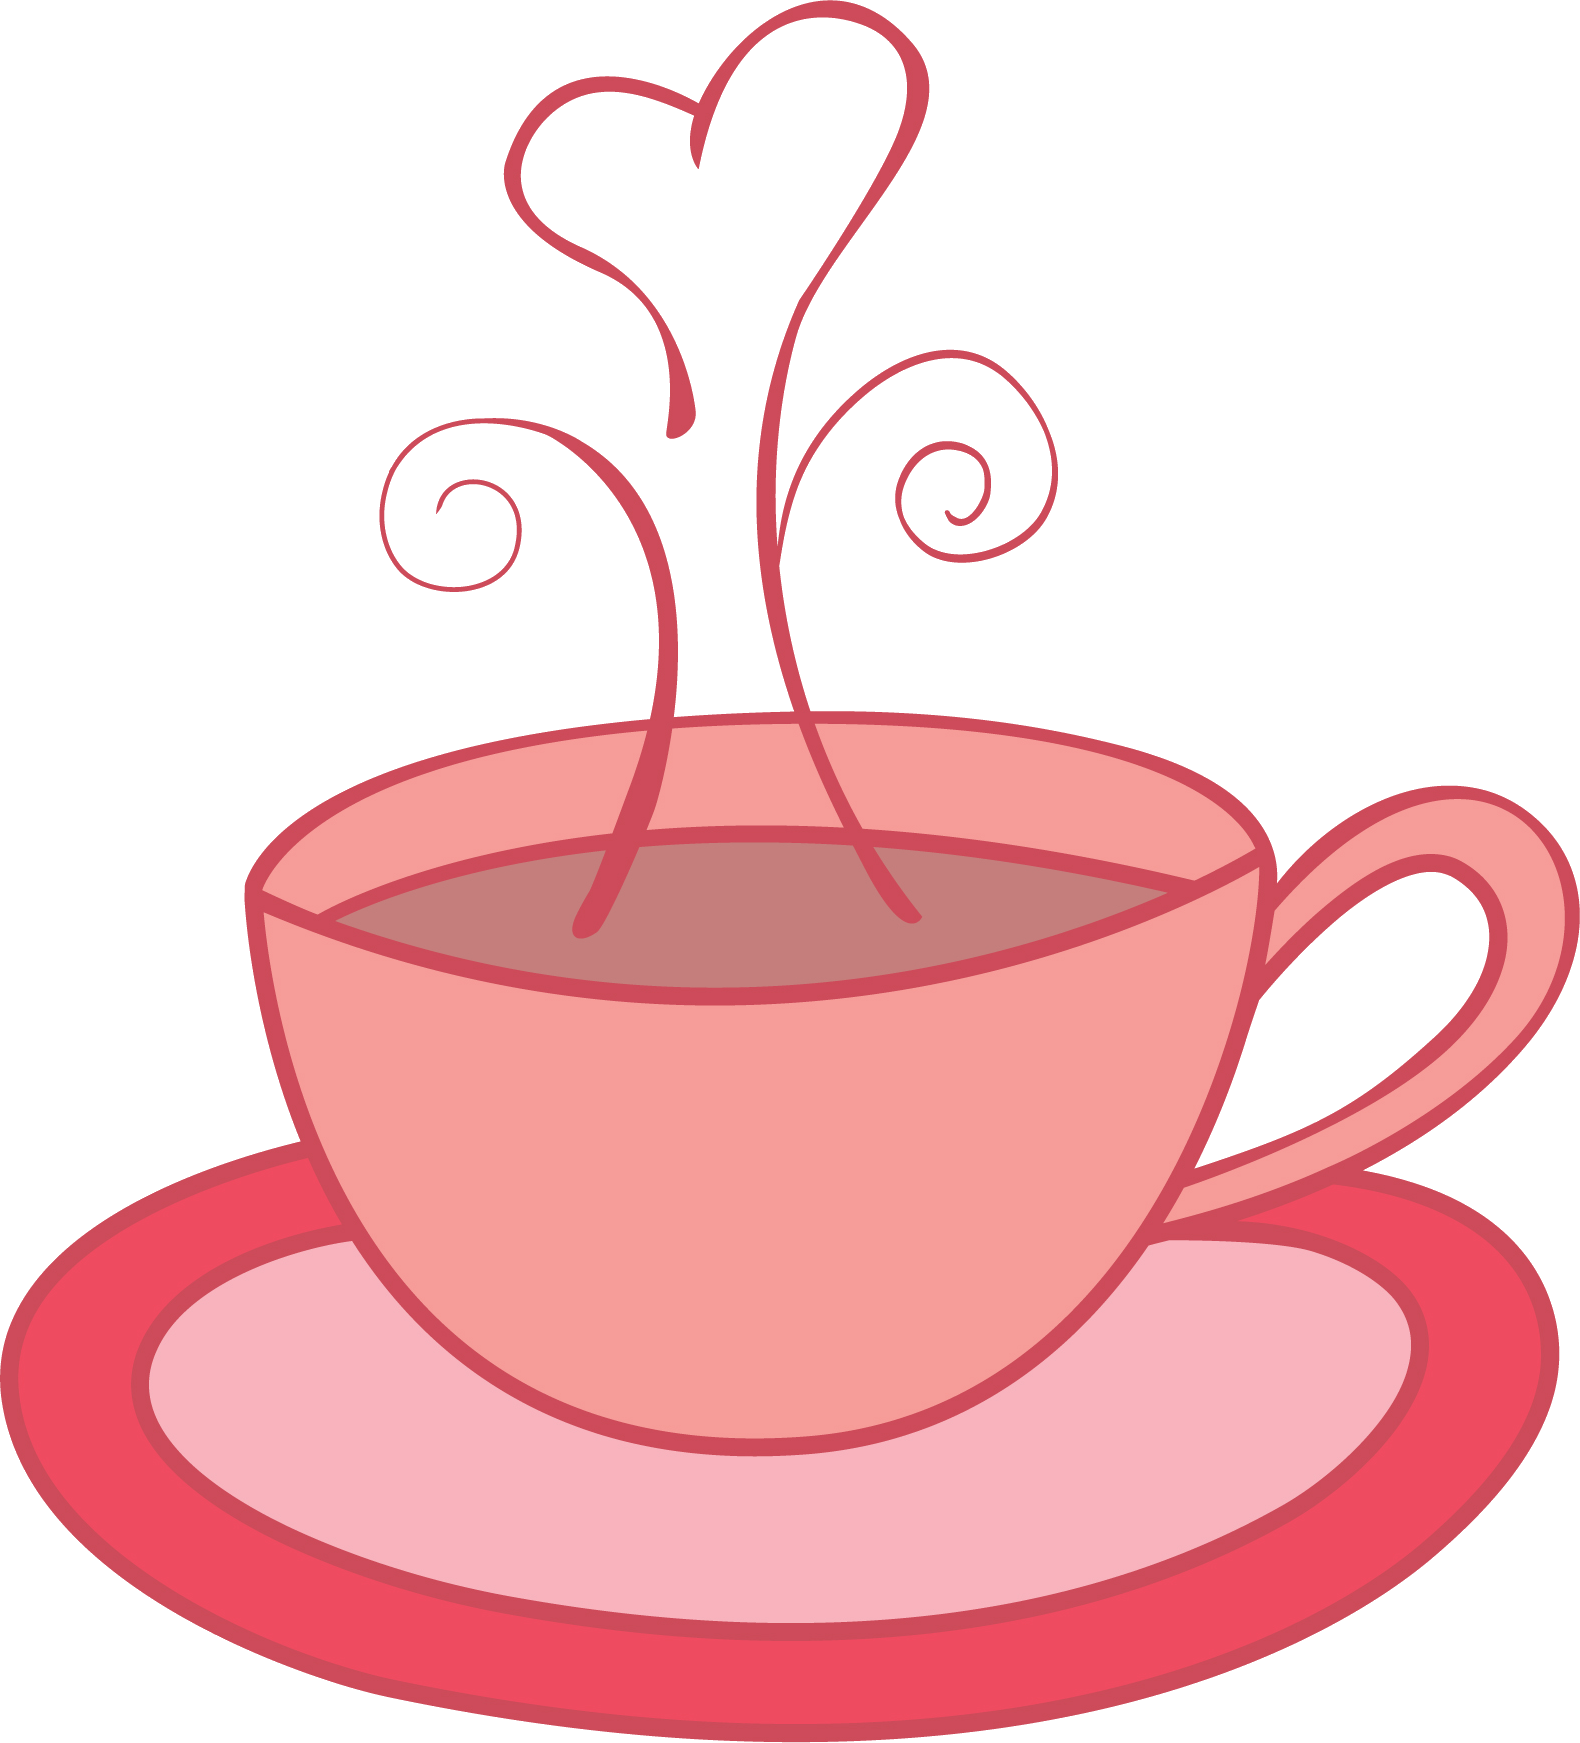 Tea Cup clipart #7, Download drawings